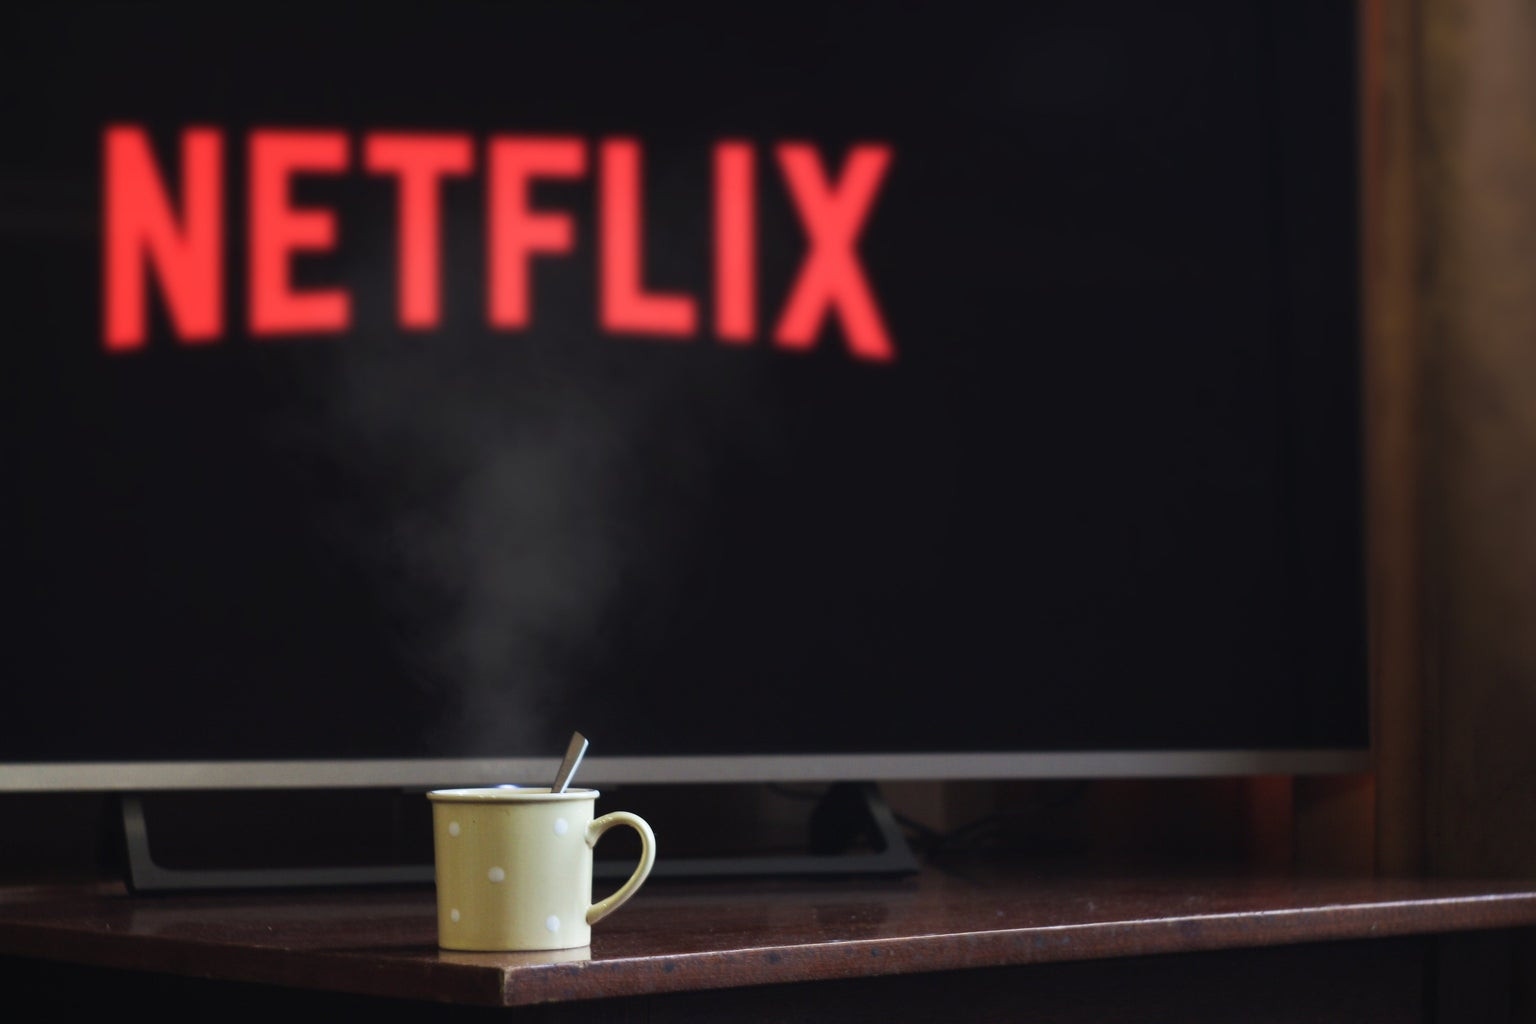 """A fuzzy screen in the back ground might say """"netflix"""" but the image's selective focus is on a mug of some sort."""